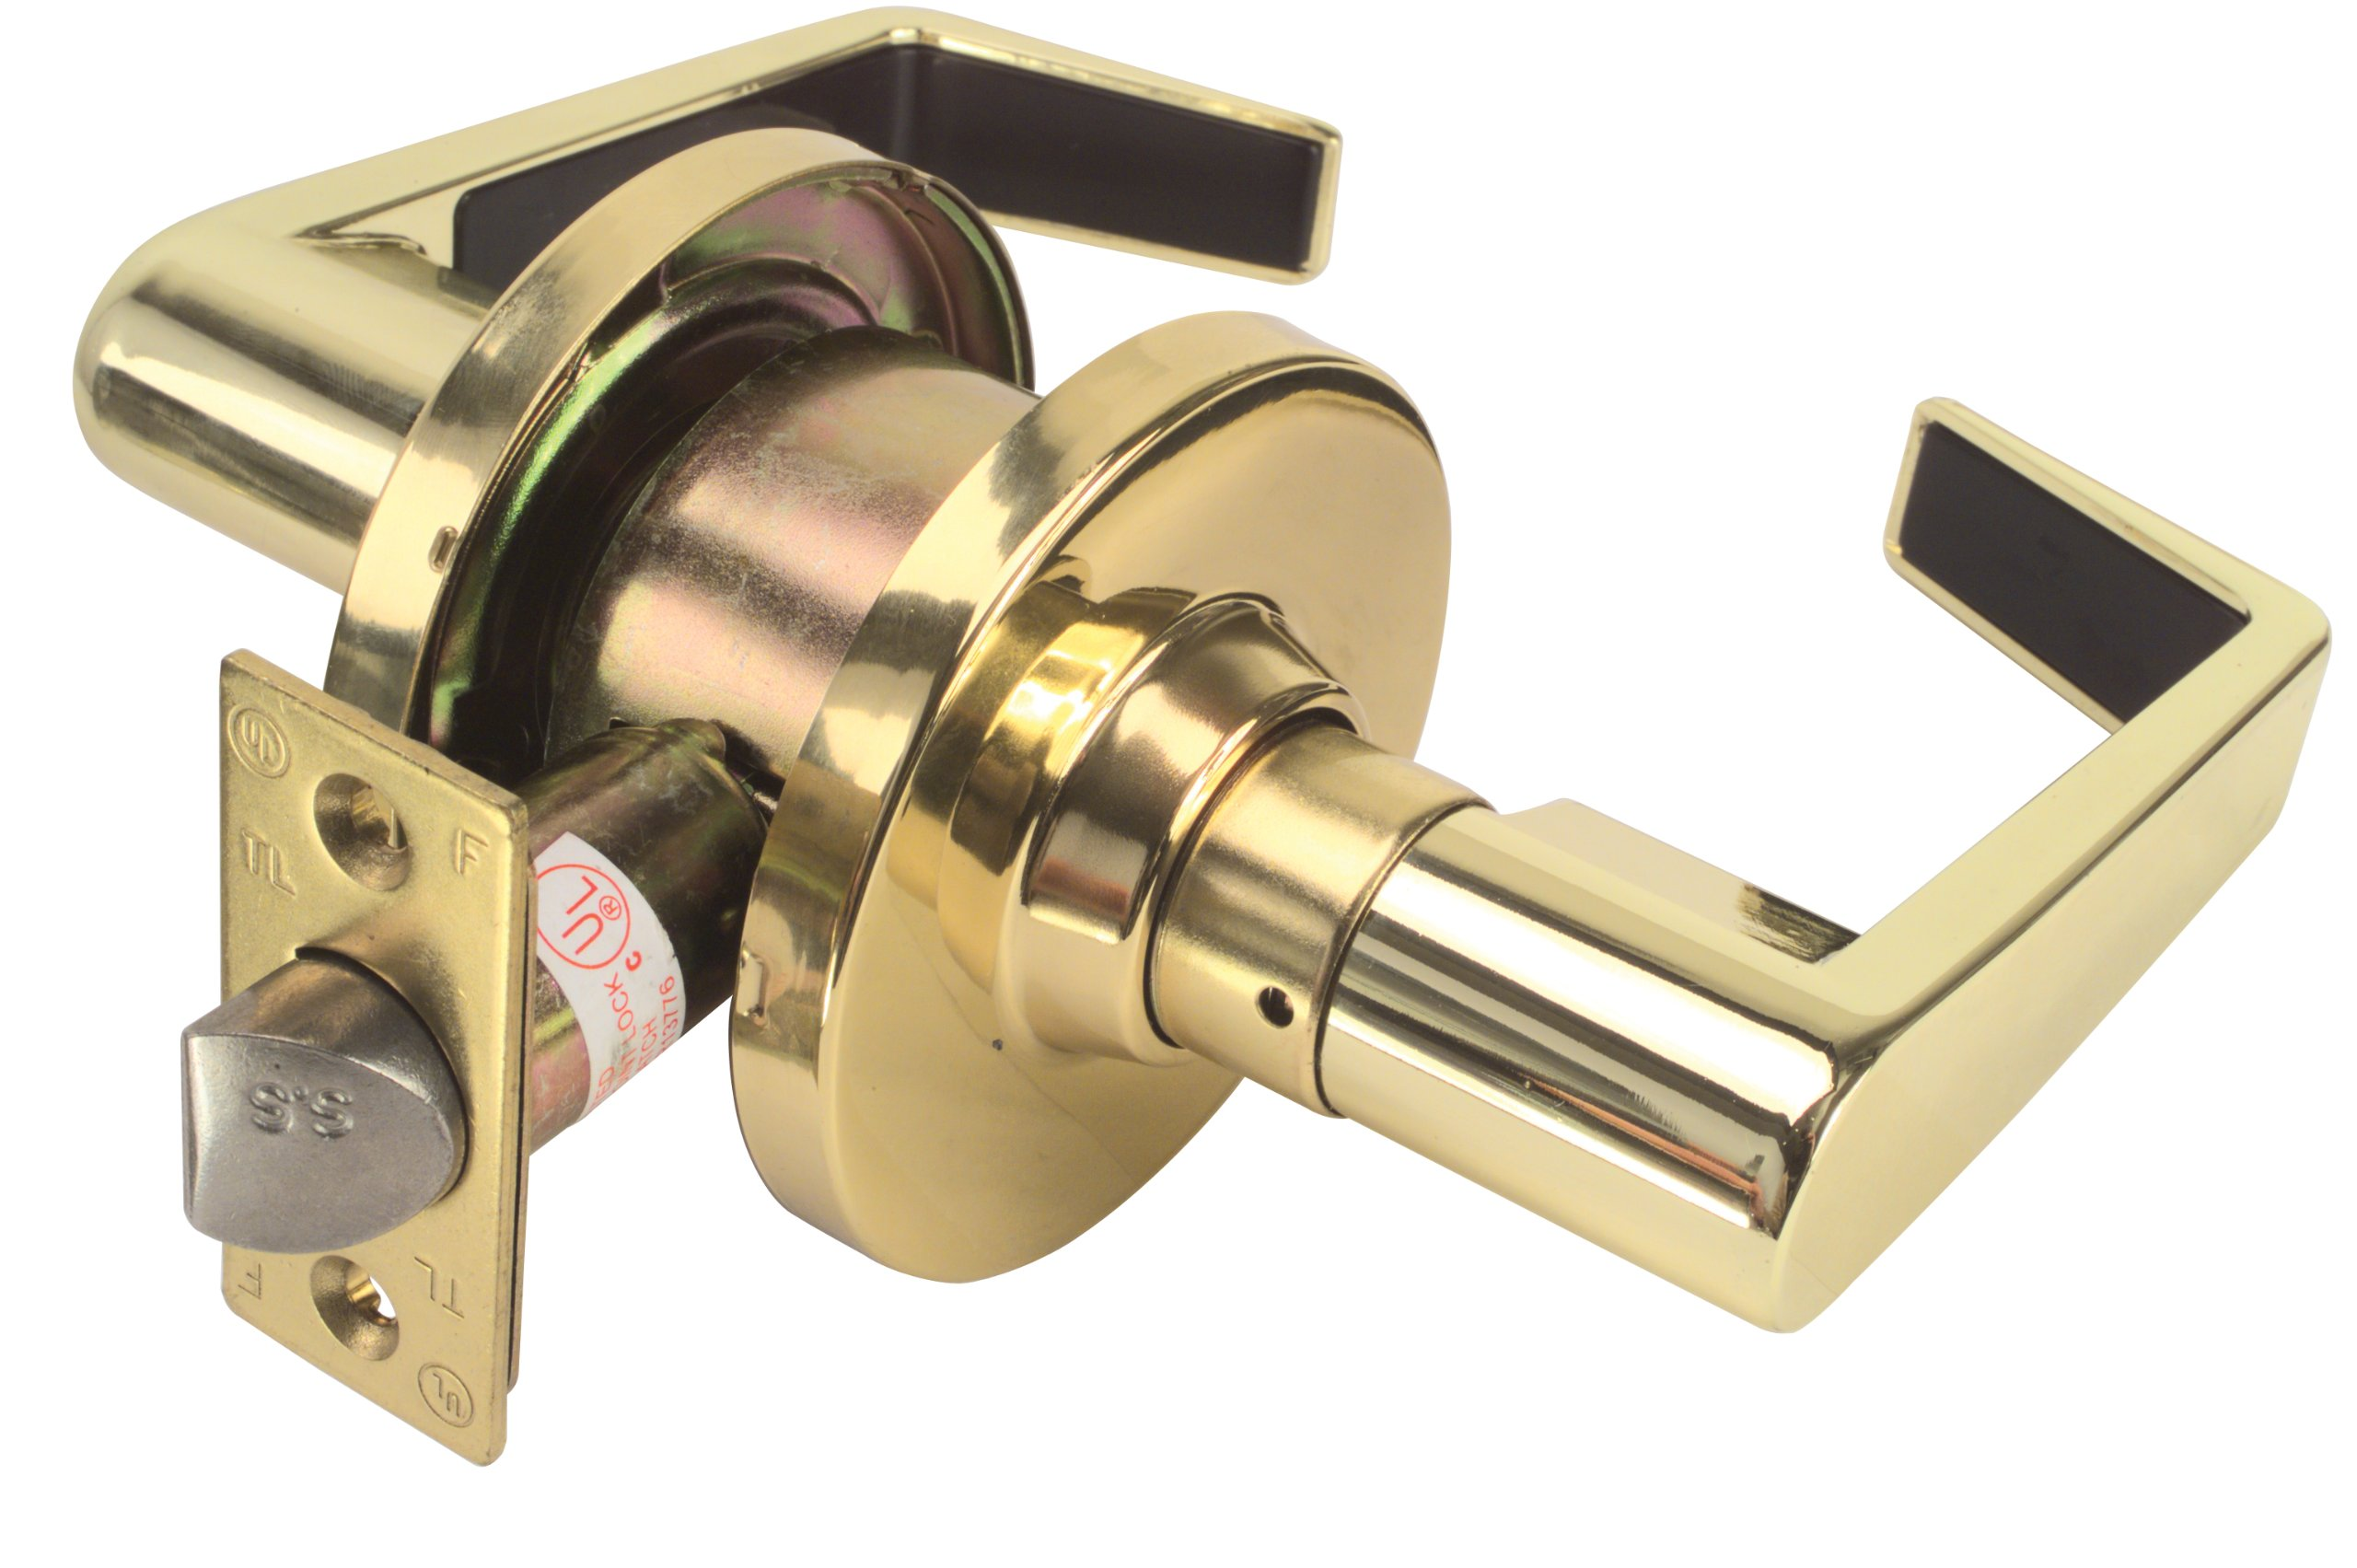 Legend 809258 Grade 2 Commercial Duty Passage Hall and Closet Leverset Lockset, US3 Polished Brass Finish by Legend